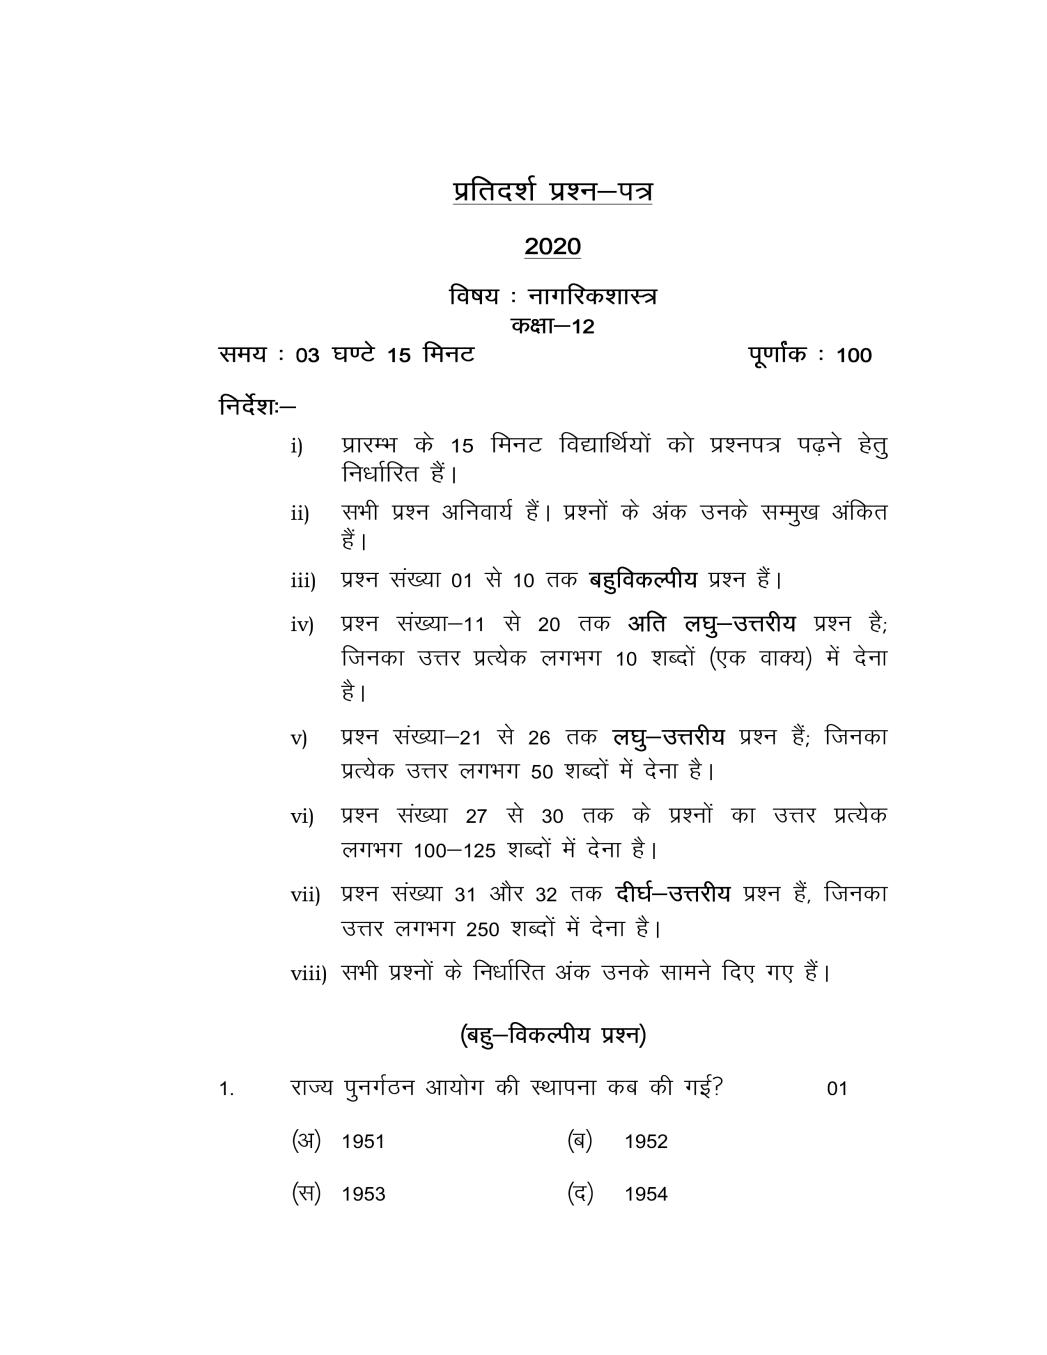 UP Board Model Paper 2020 Class 12th – Civics